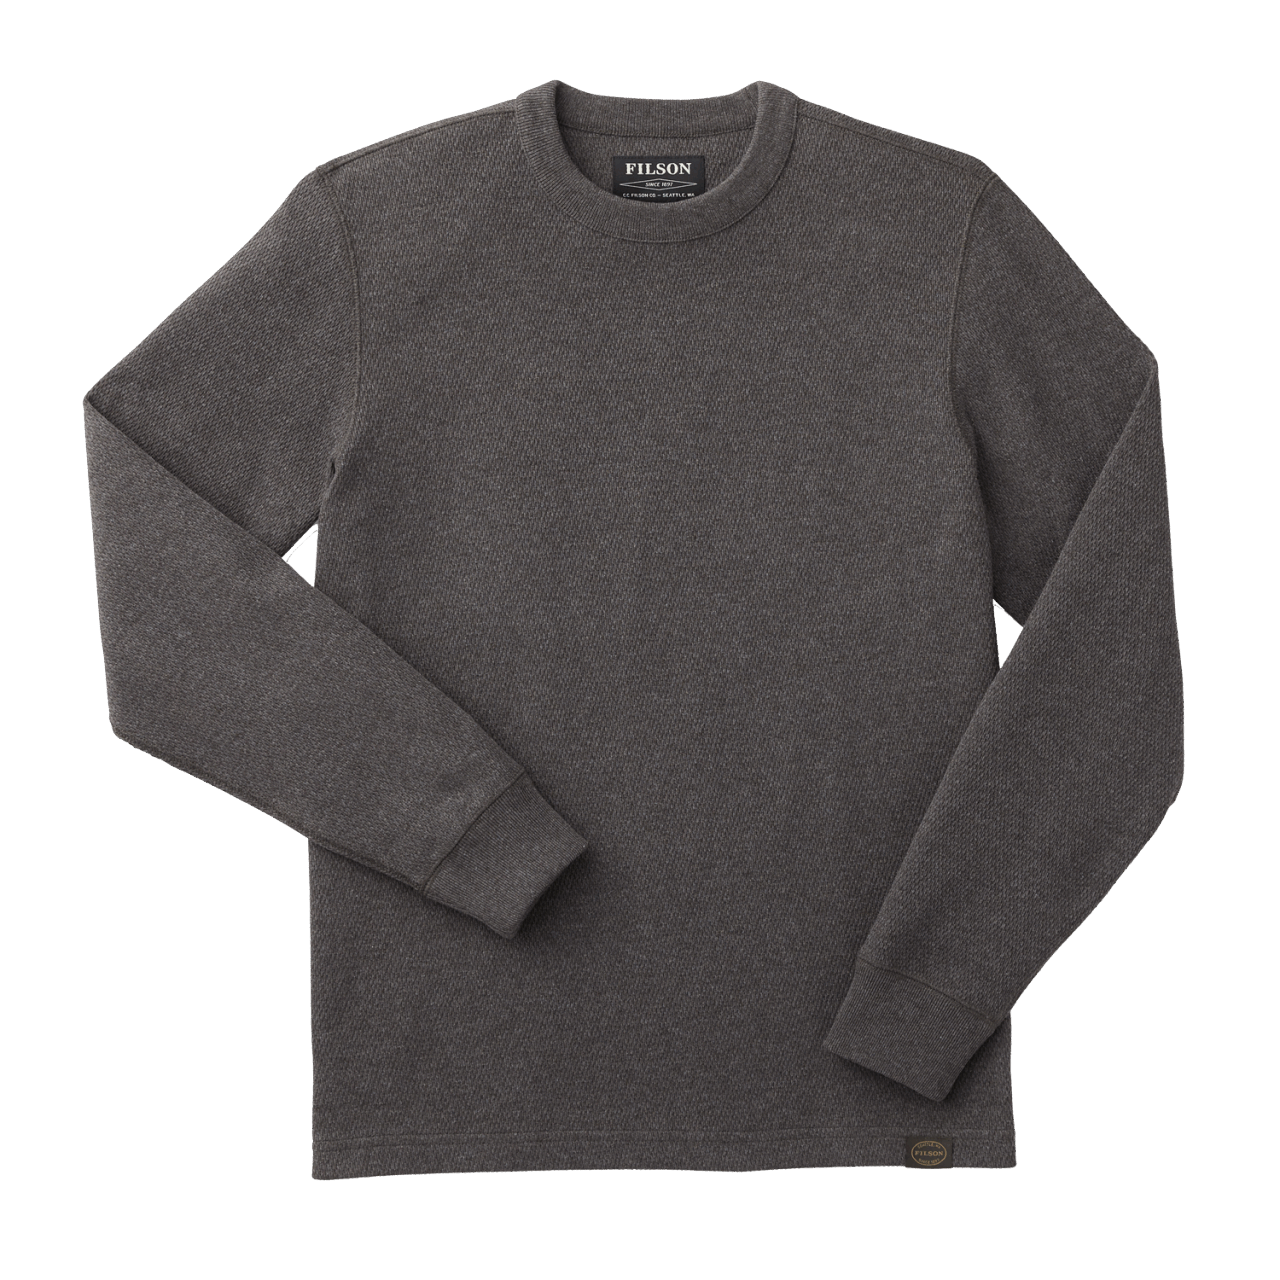 Filson Waffle Knit Thermal Crew Shirt - charcoal